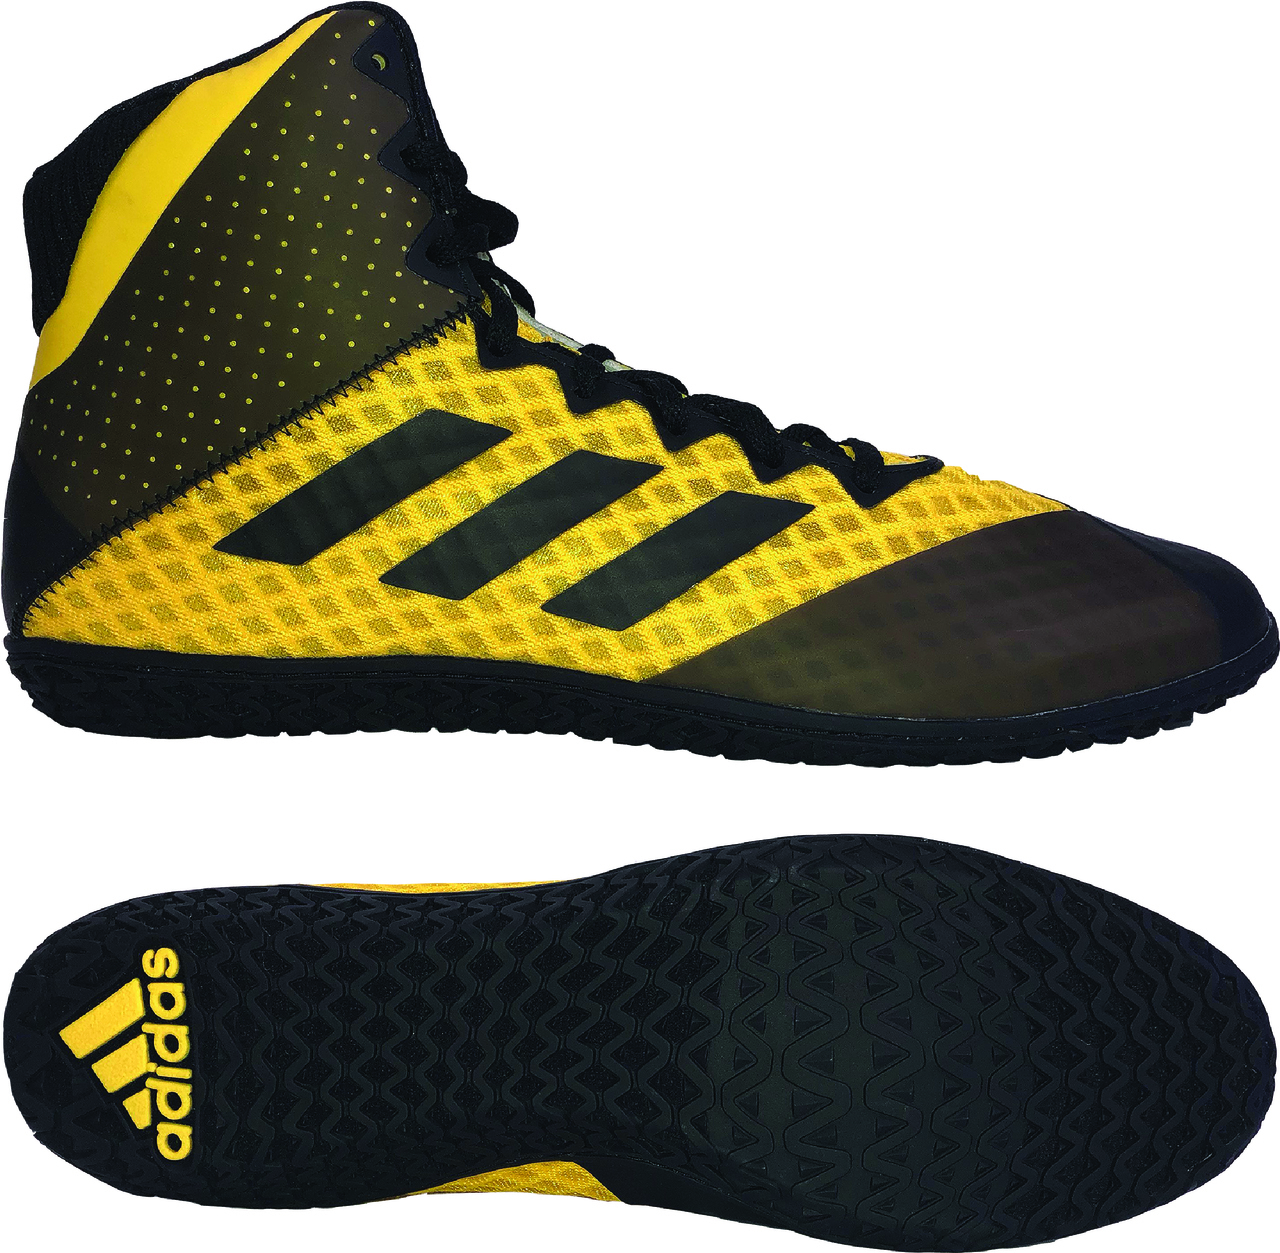 NEW!! adidas Mat Wizard 4 Wrestling Shoe, color: Gold/Black